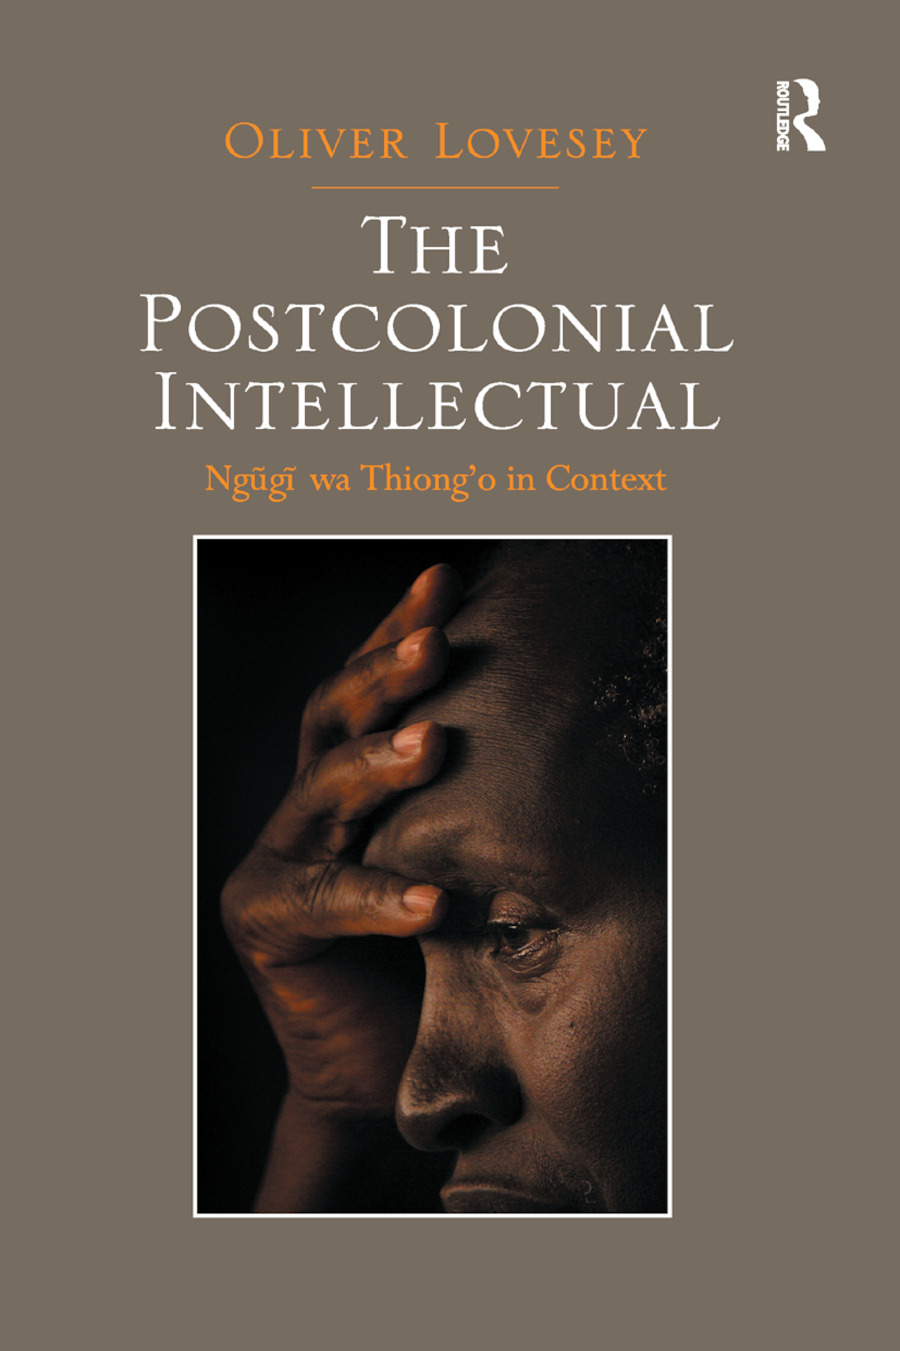 The Postcolonial Intellectual